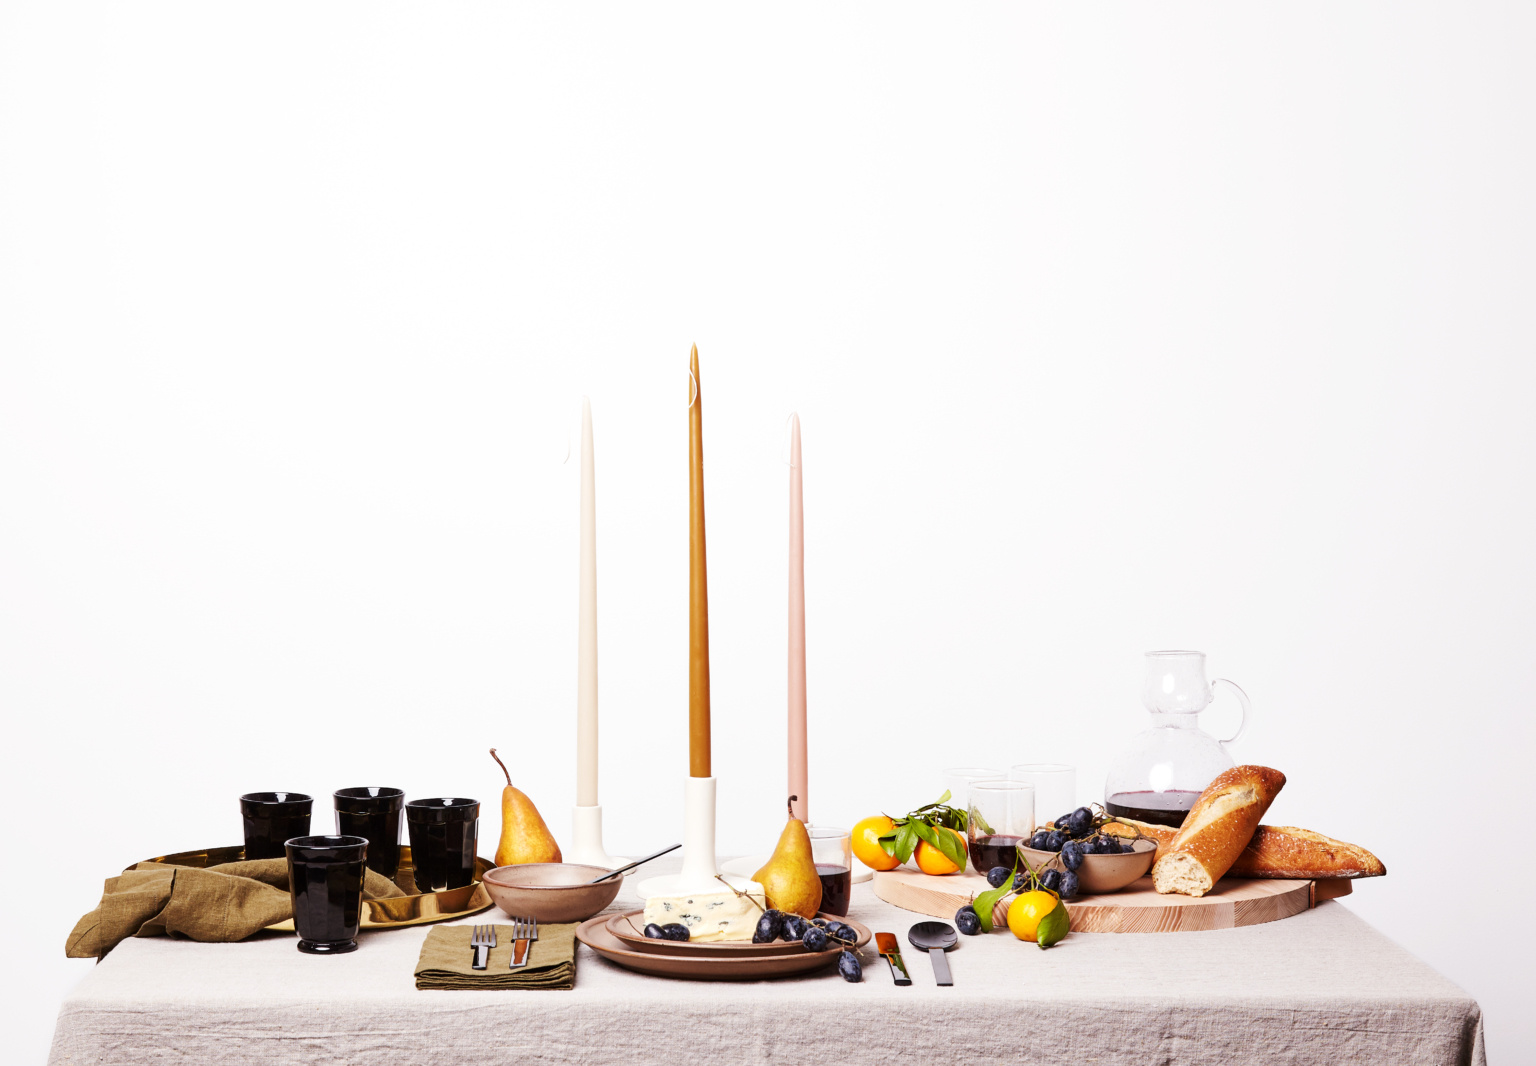 Enter to Win: A Festive Holiday Tablescape (Worth $1,500) Curated by the Editors of Remodelista